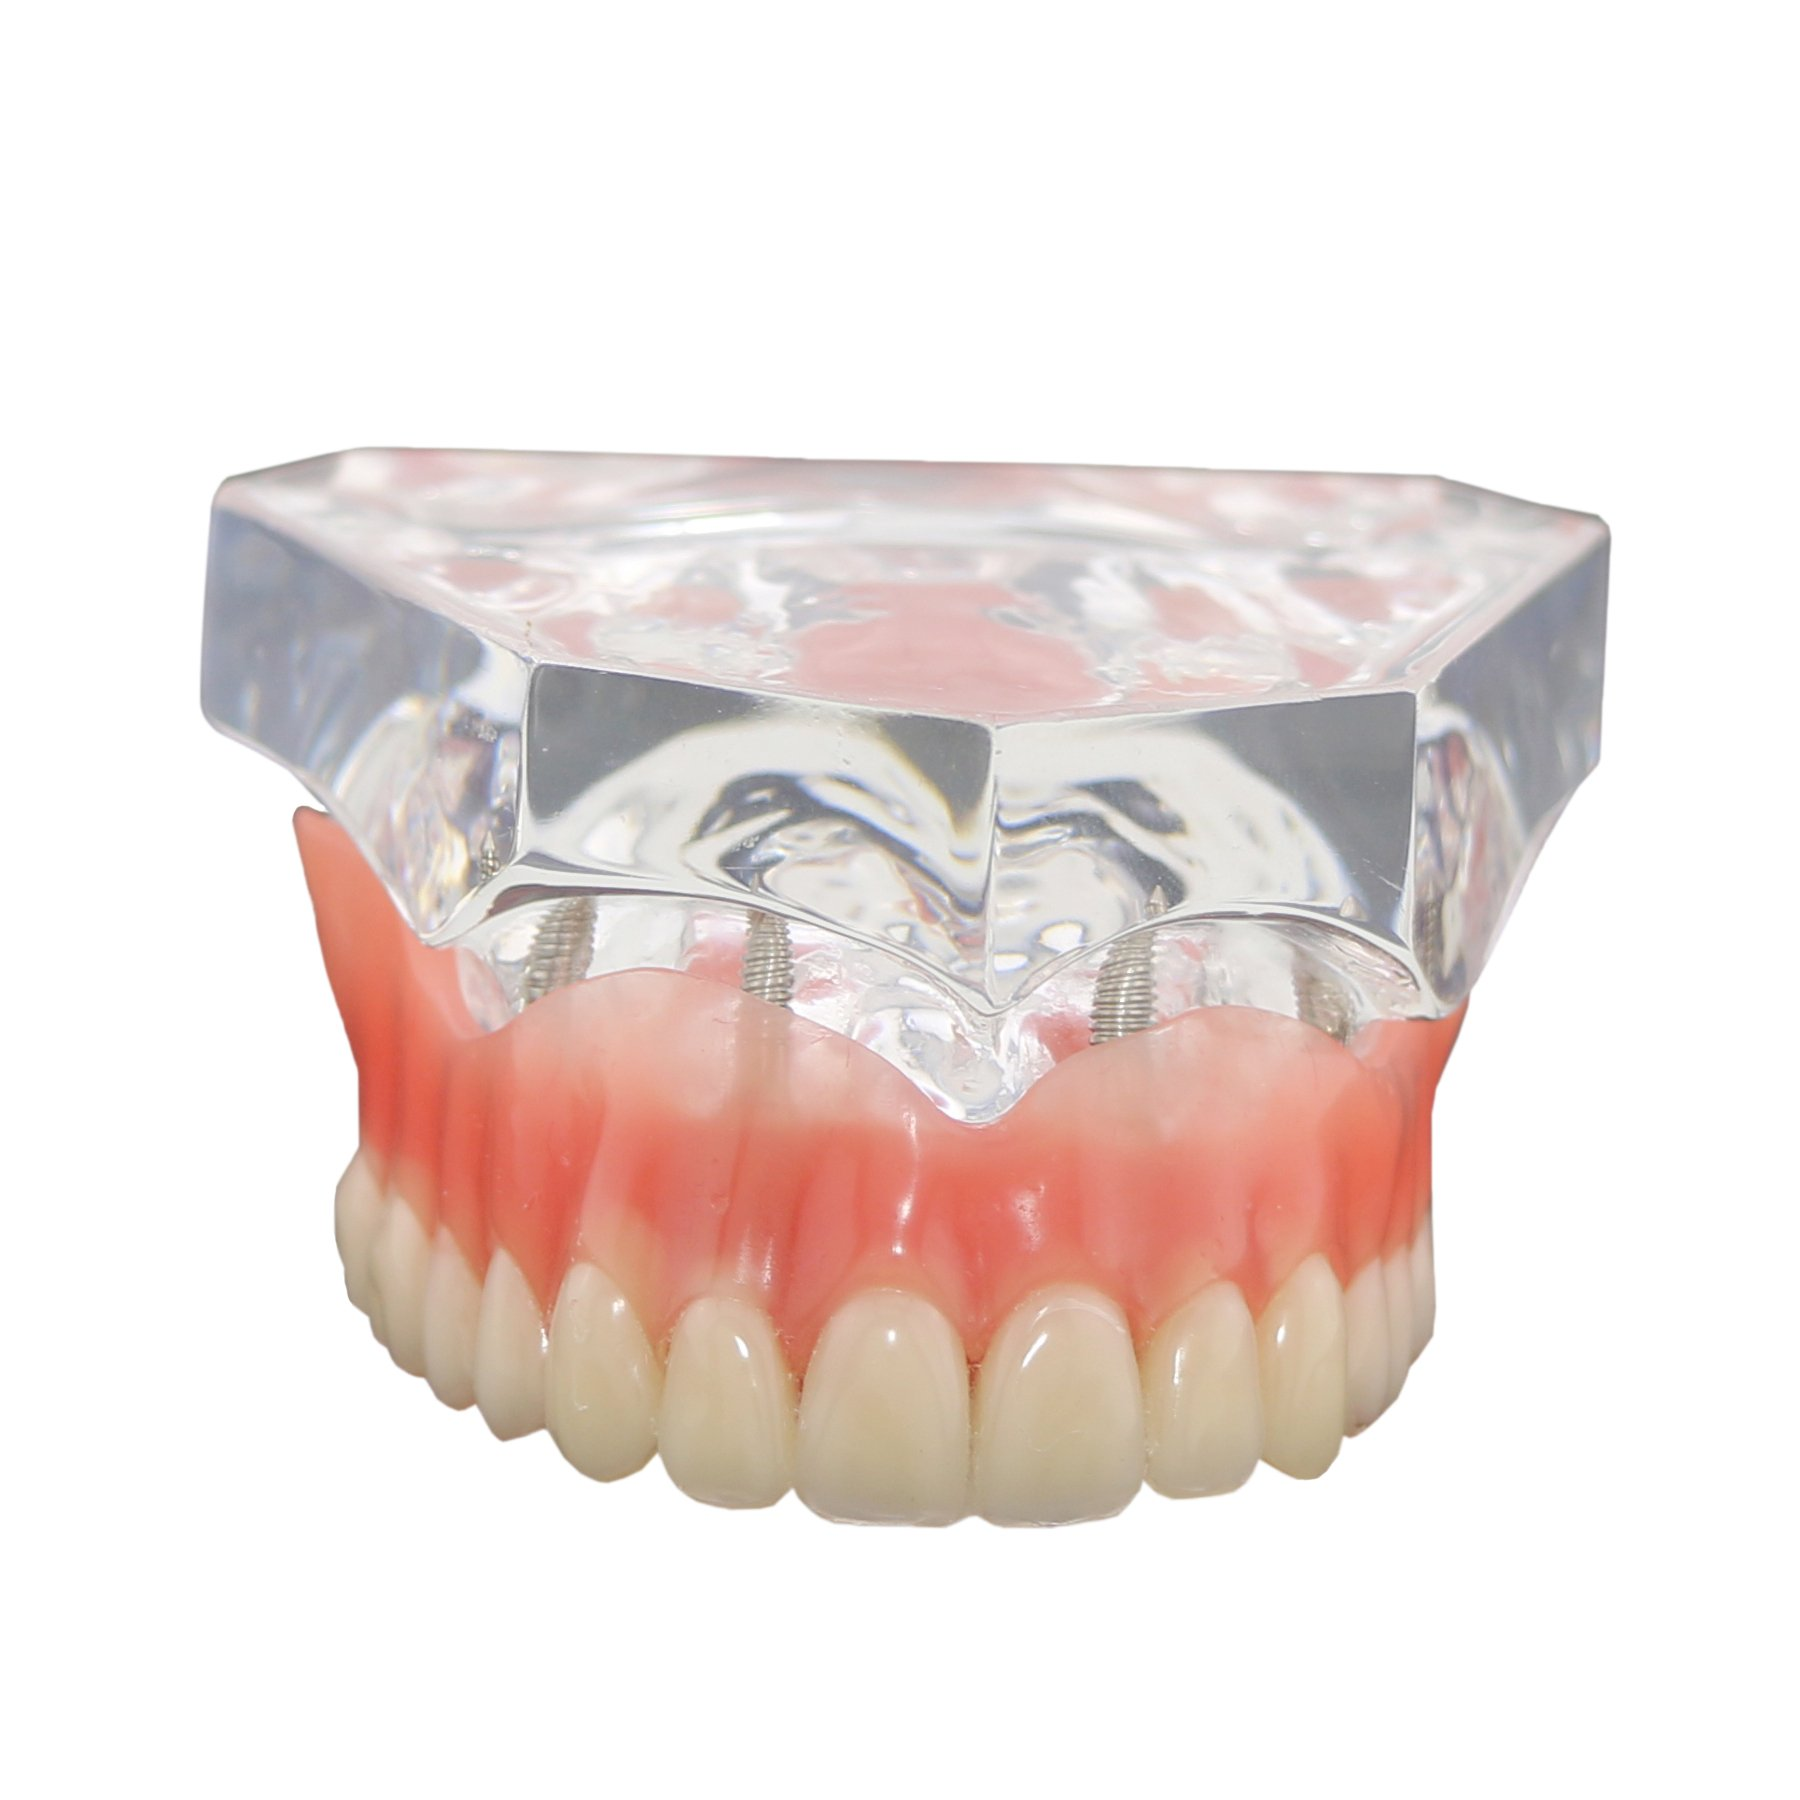 Dental Implants Teeth Model with 4 Upper Jaw Removable Overdenture Transparent Mode Tool of Adult for Teaching Dducation Studying typodont